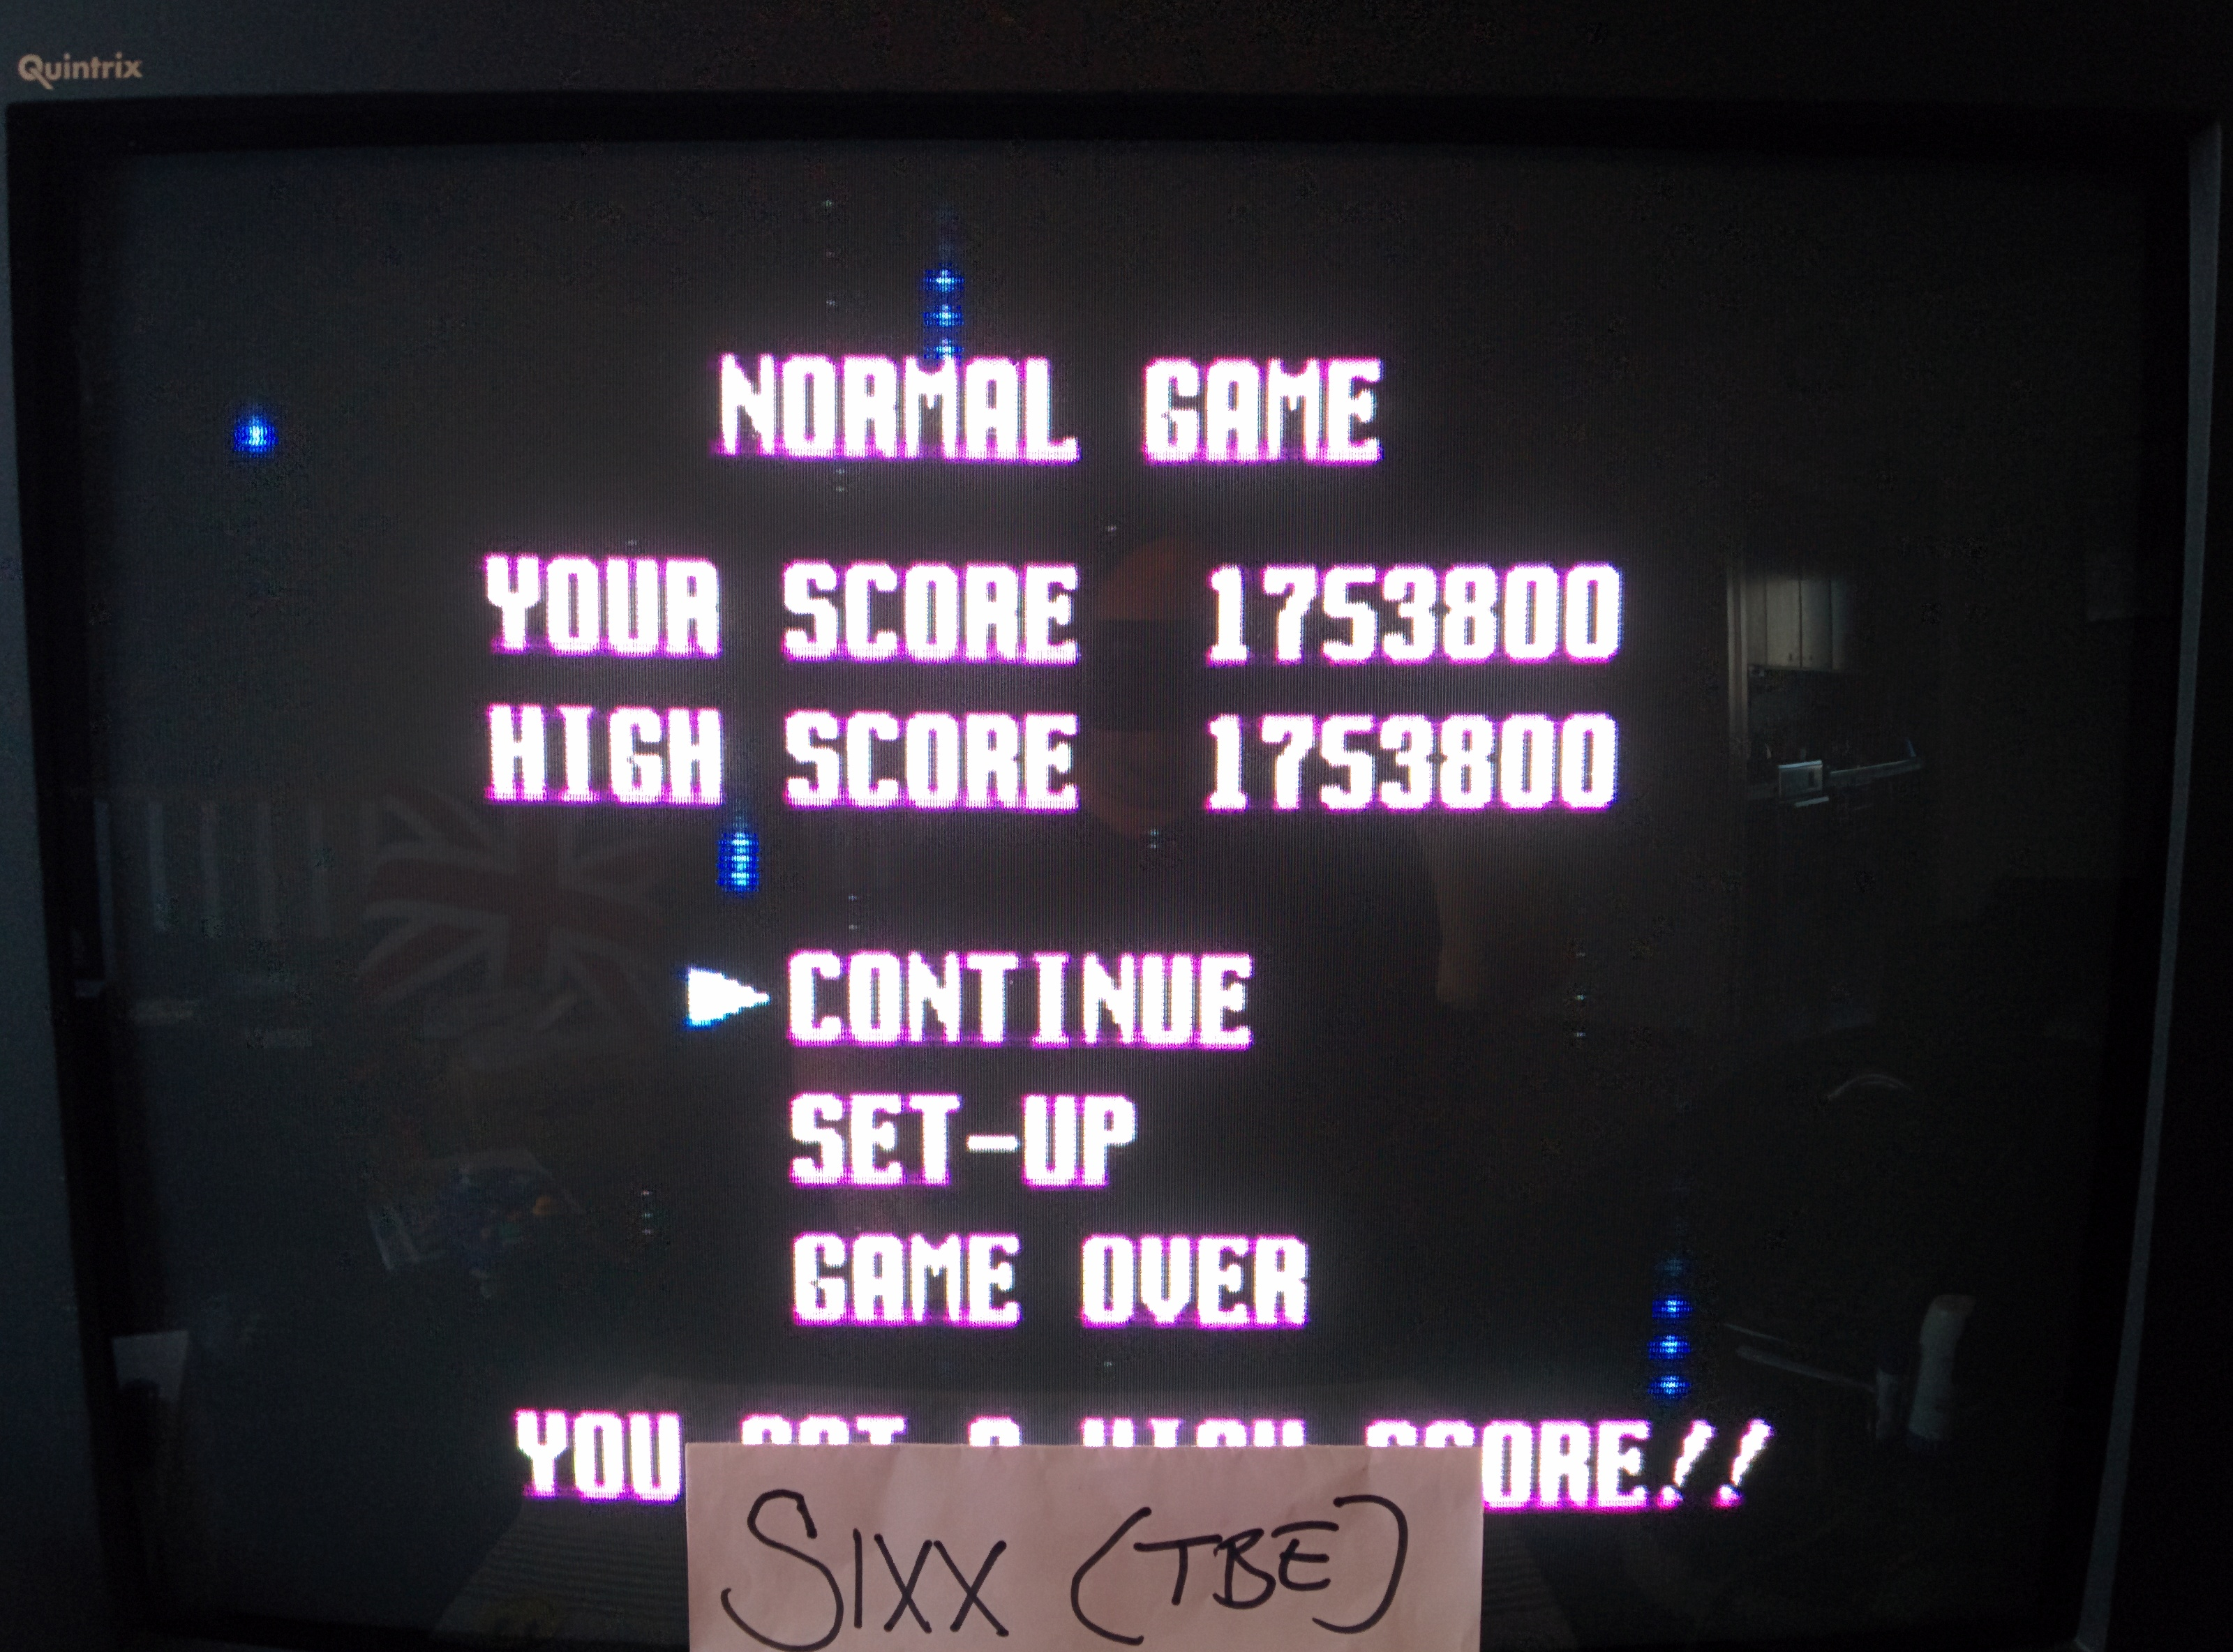 Sixx: Final Soldier (TurboGrafx-16/PC Engine Emulated) 1,753,800 points on 2014-06-18 15:00:42